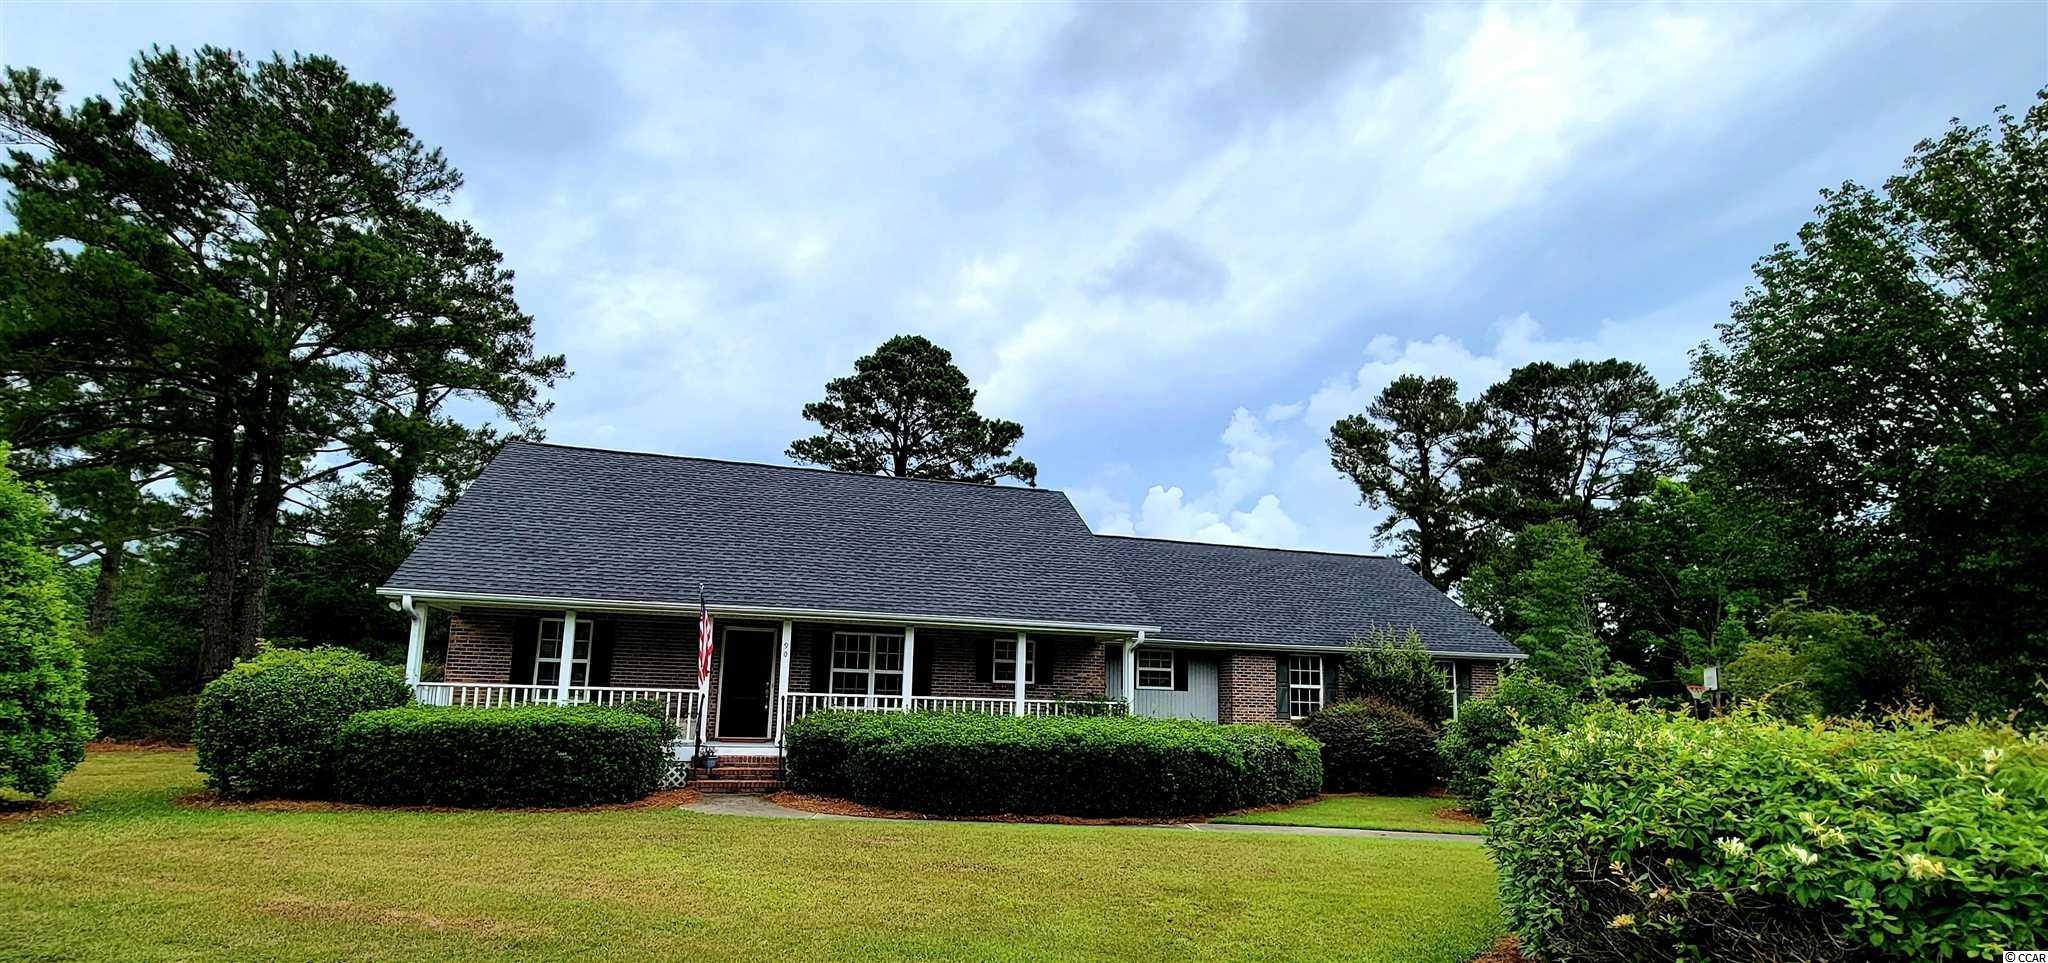 This home is move in ready and easy to see! Located in historic Wedgefield Plantation with Golf Course, Restaurant and Private Boat Landing! This home offers 3 bedrooms 2 1/2 baths with attached 2 car garage.  New HVAC and 3 year old roof. Beautiful Hardwood floors, large walk-in closets in Master Bedroom, Garden Tub and Walk-in Shower in Master Bath and gas fireplace in Family Room. In addition all appliances will convey with sell of home. Located on 3rd Fairway of the Golf Course with access to the private Boat Landing on Black River, this will allow you short run to access Winyah Bay and the Intracoastal Waterway.